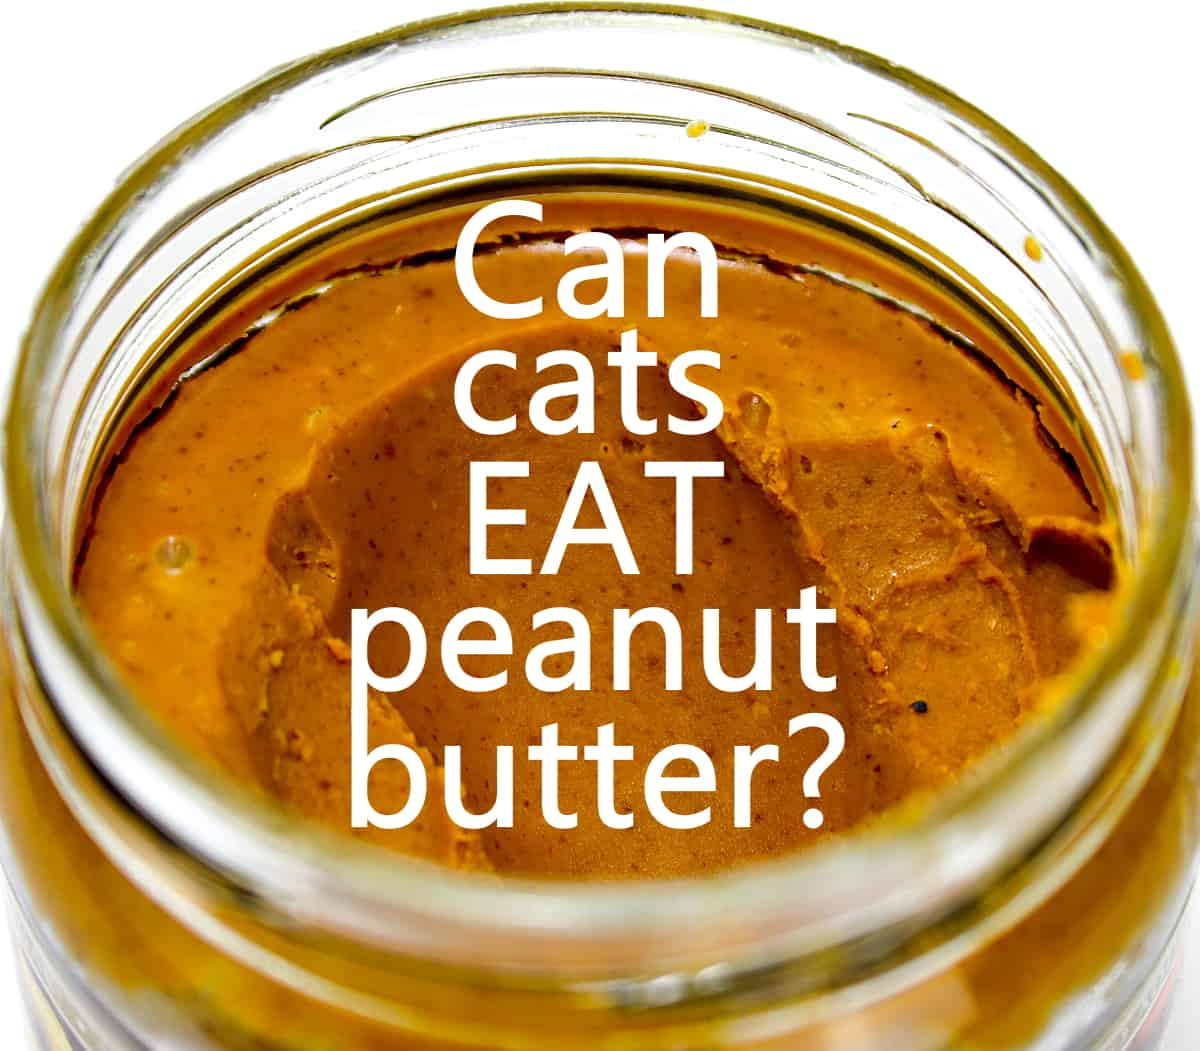 Can cats eat peanut butter like this?